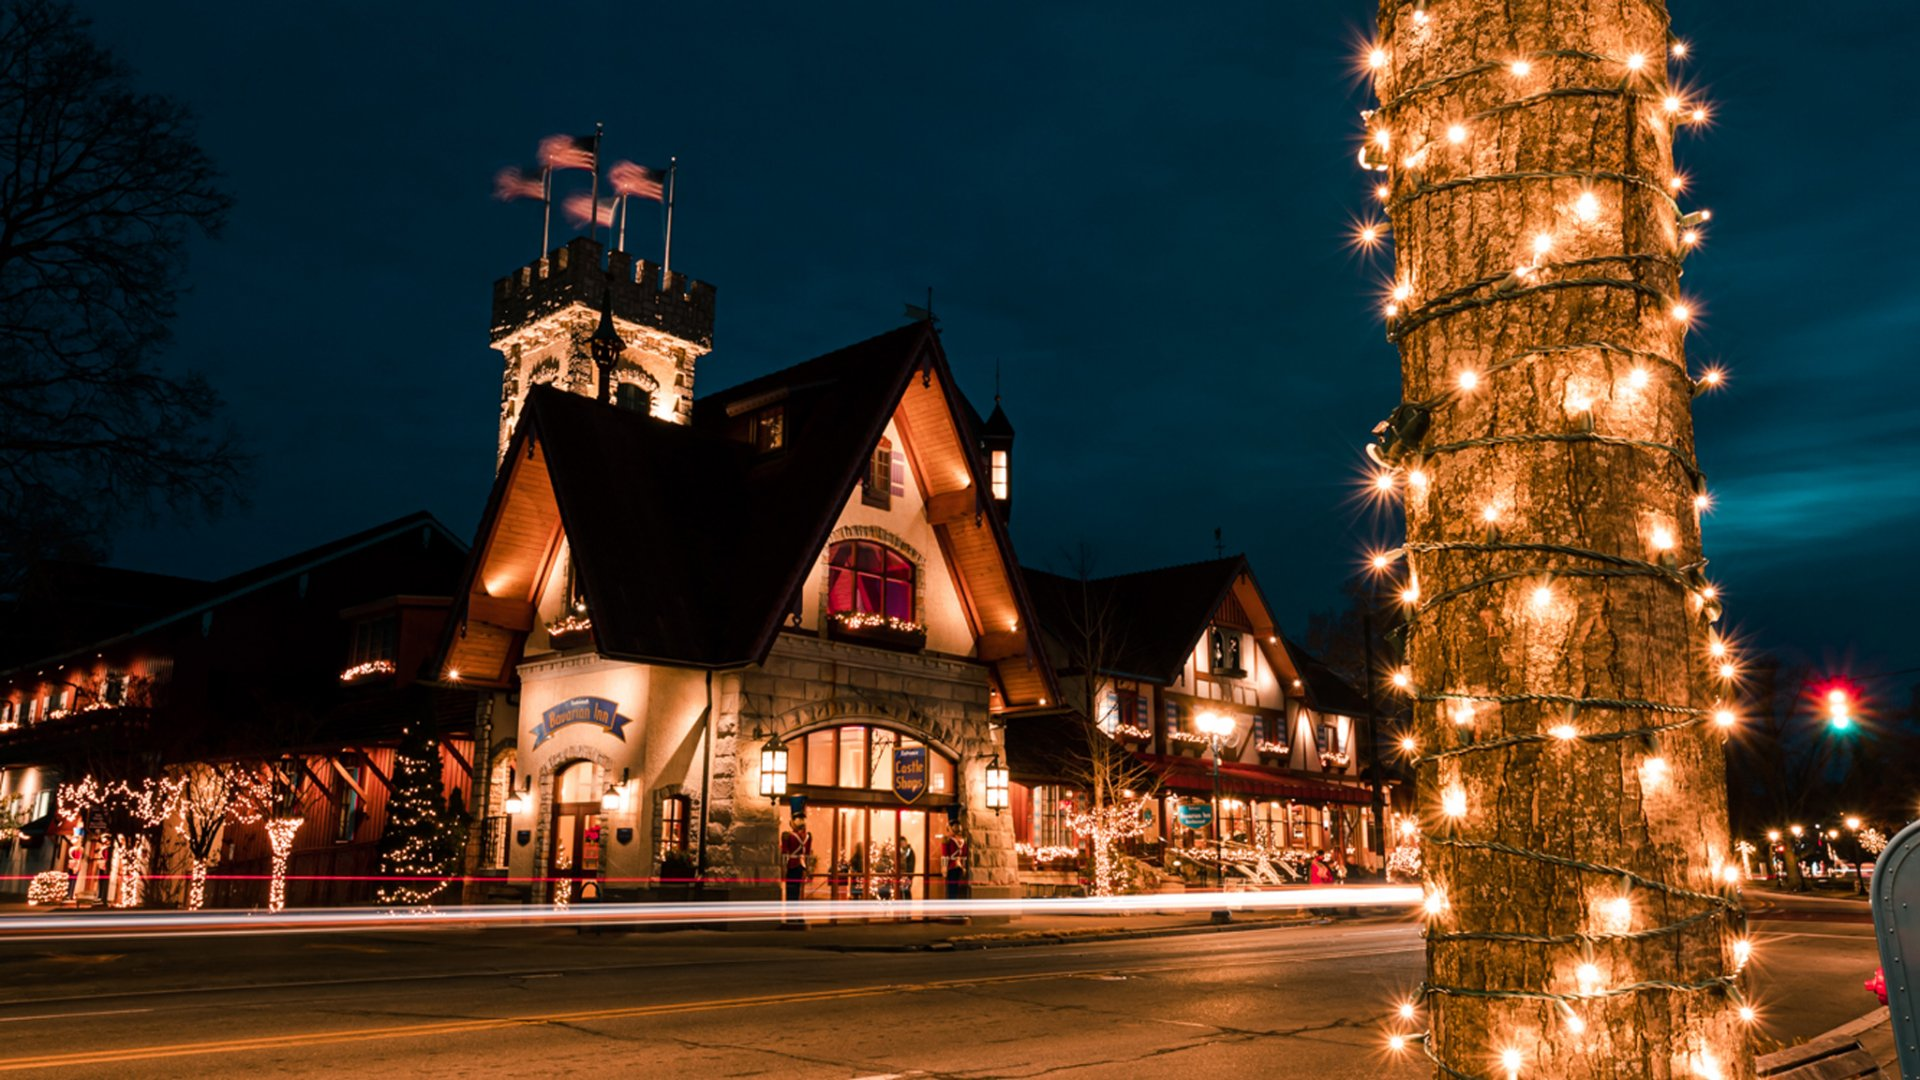 How Businesses in This Tiny Town in Michigan Are Recasting Holiday Traditions for 2020